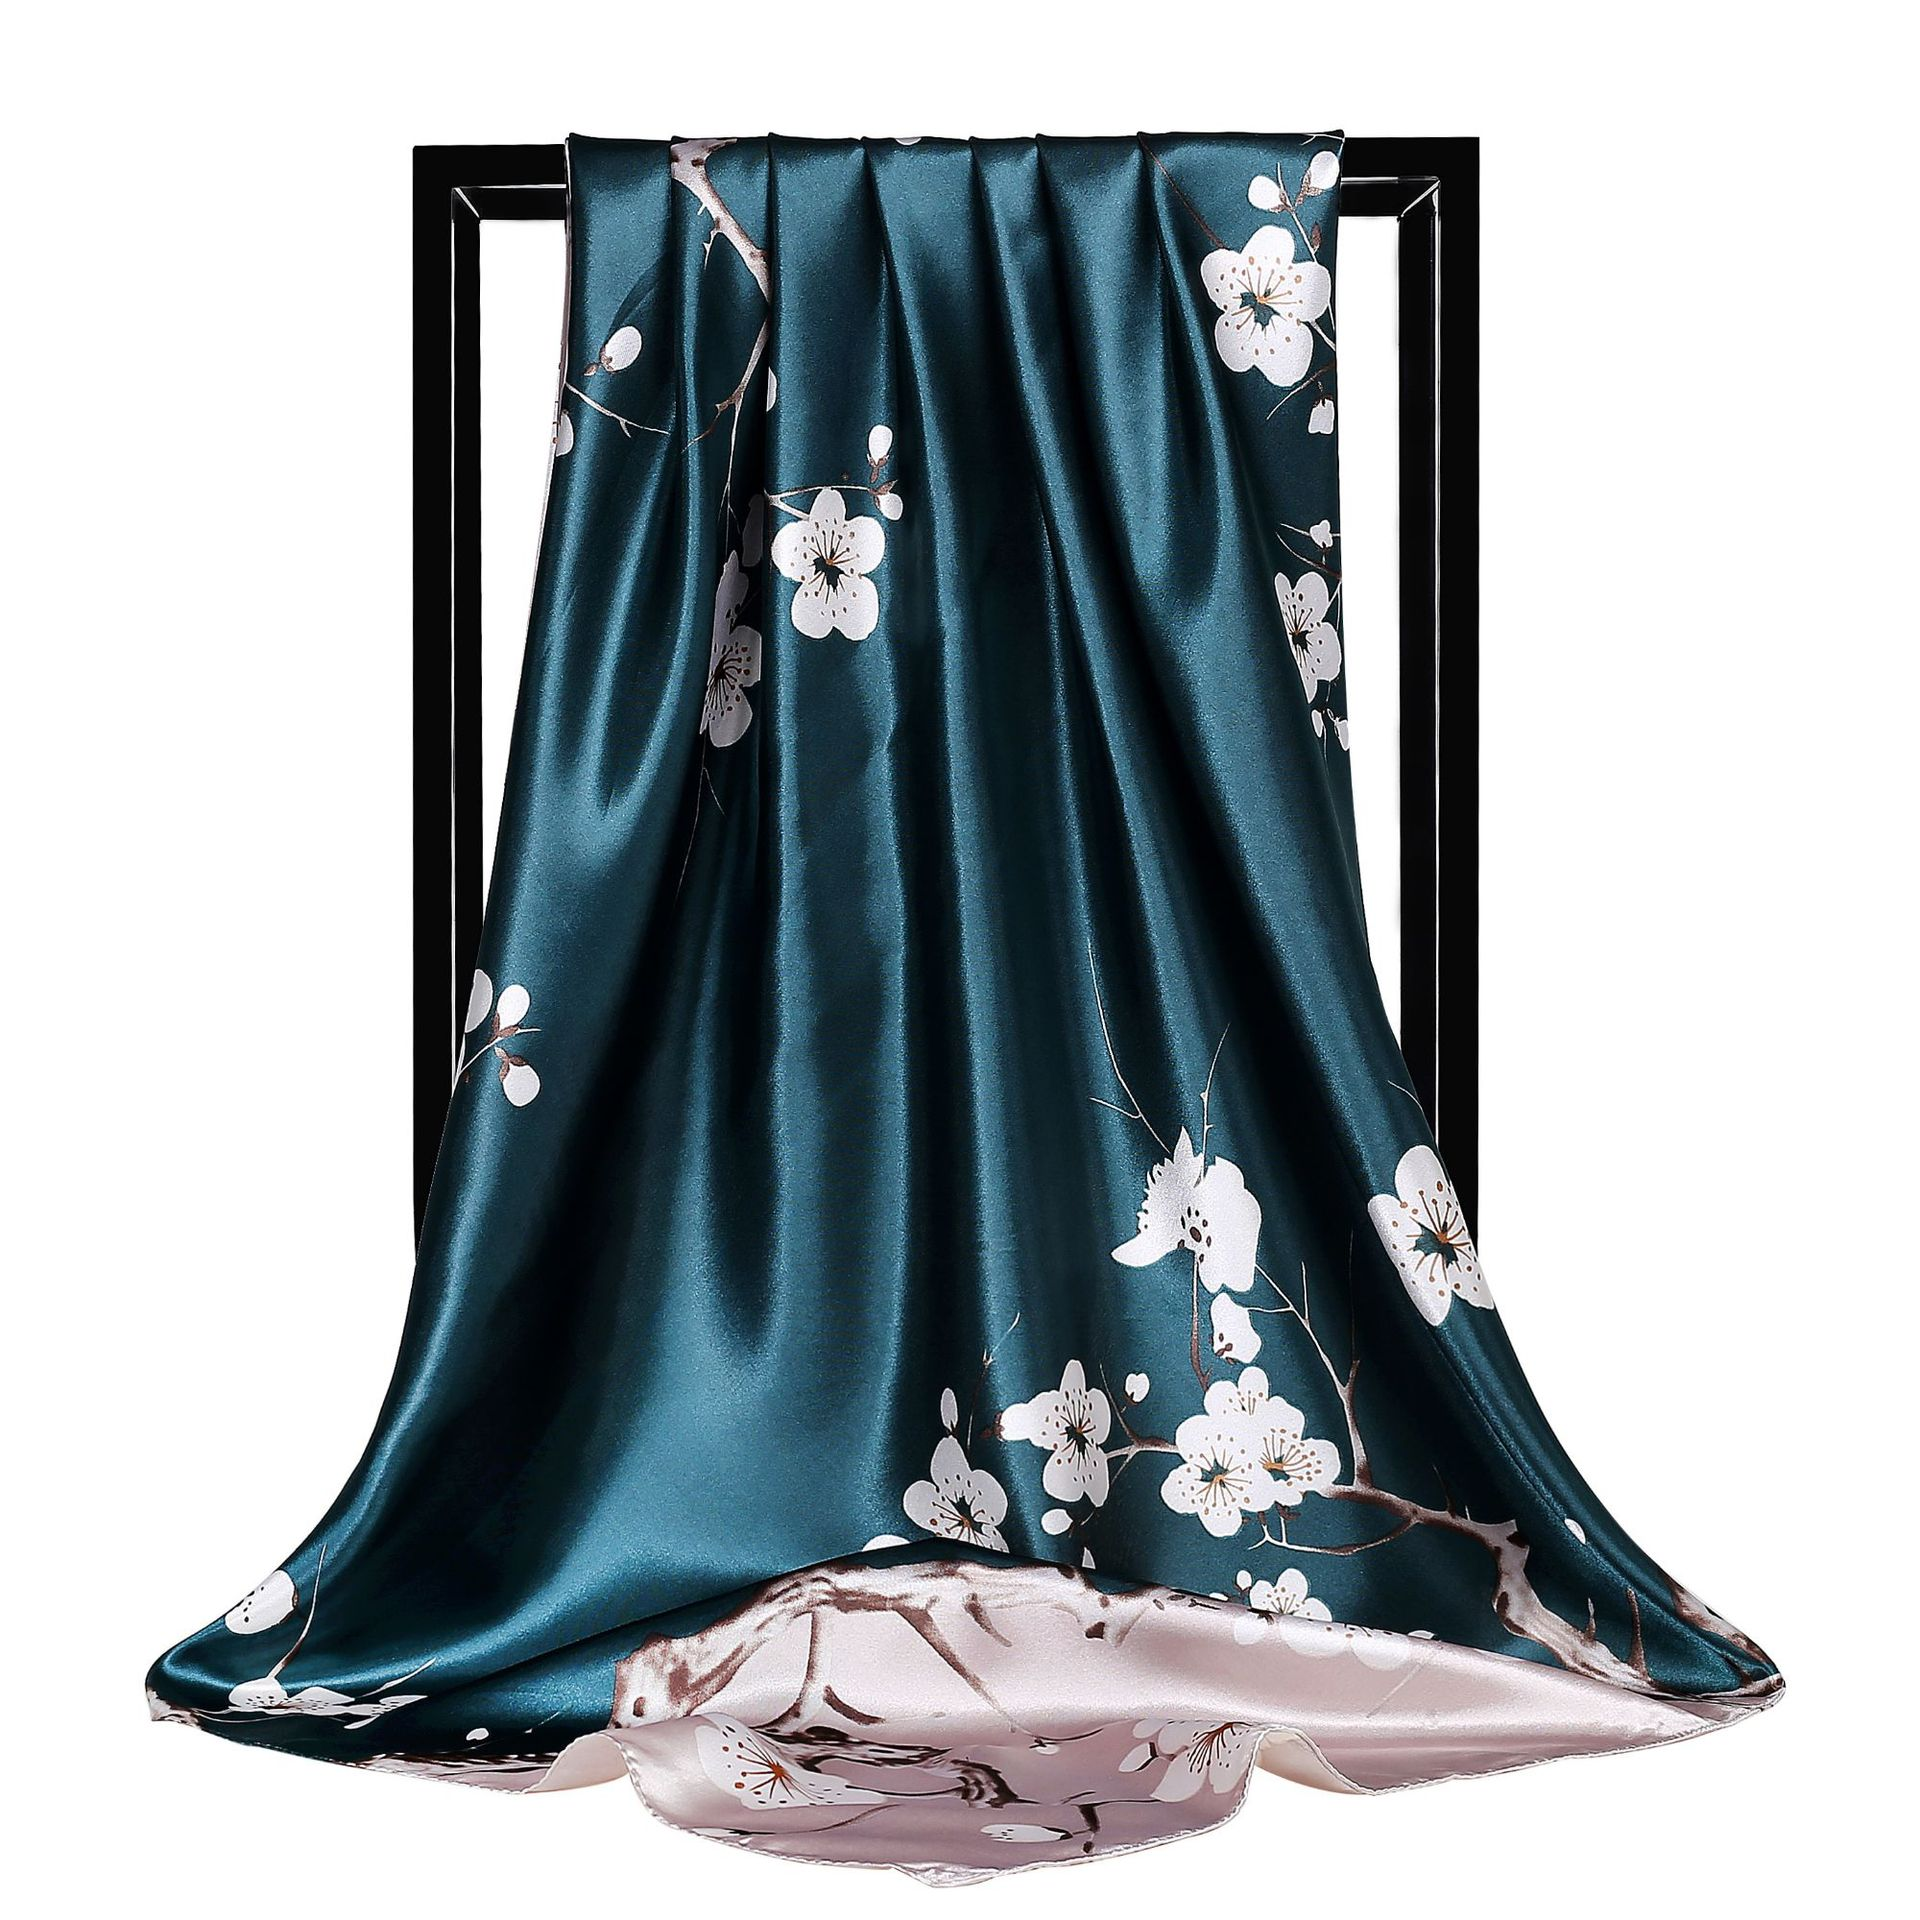 New Spring And Autumn Luxury Quality Silk Women's Printing Silk Scarves Tourism Square Scarf Fashion Seaside Sunscreen Shawl